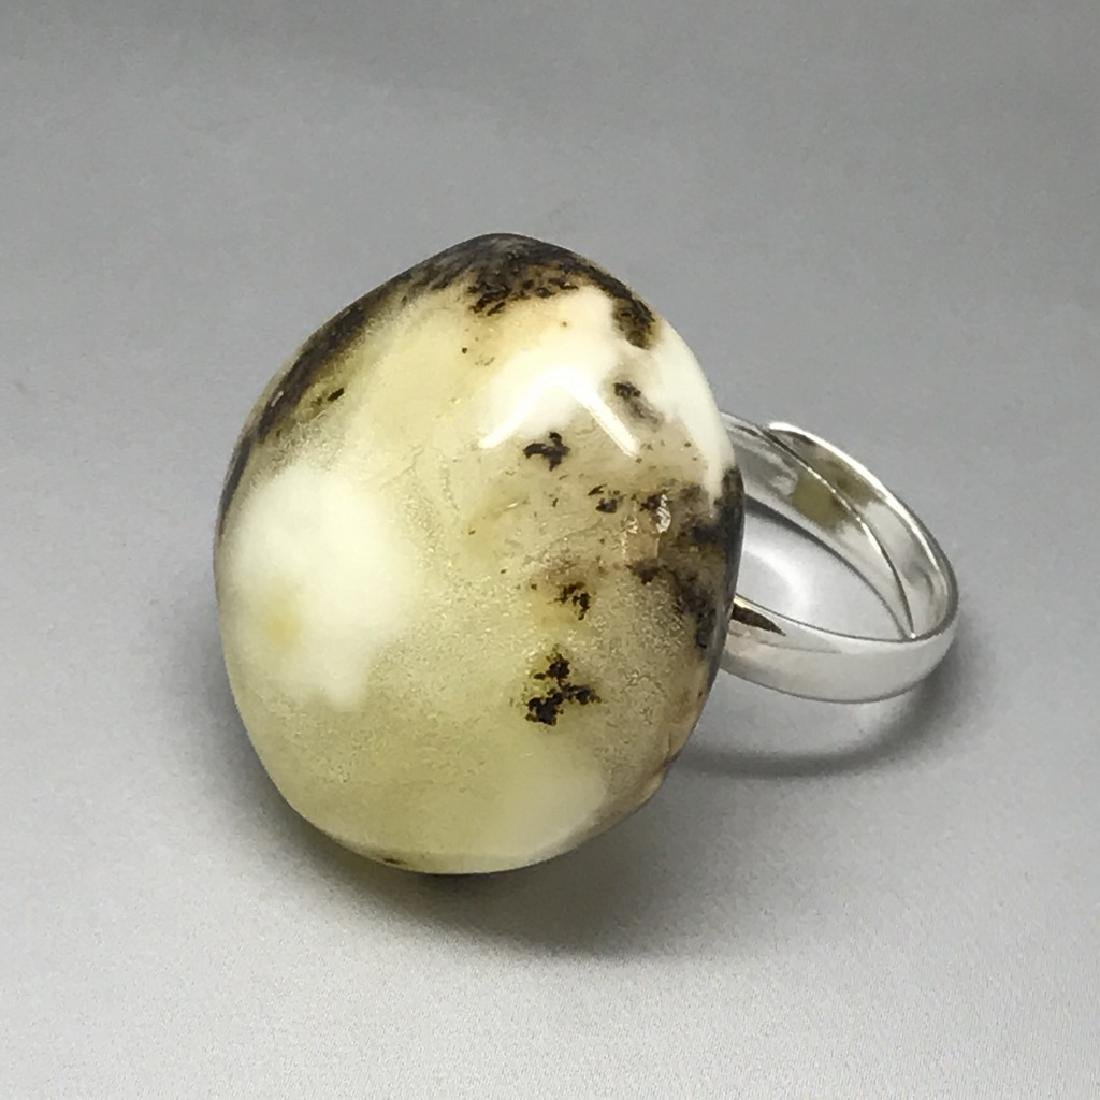 Vintage silver ring large Baltic amber rare colour - 8